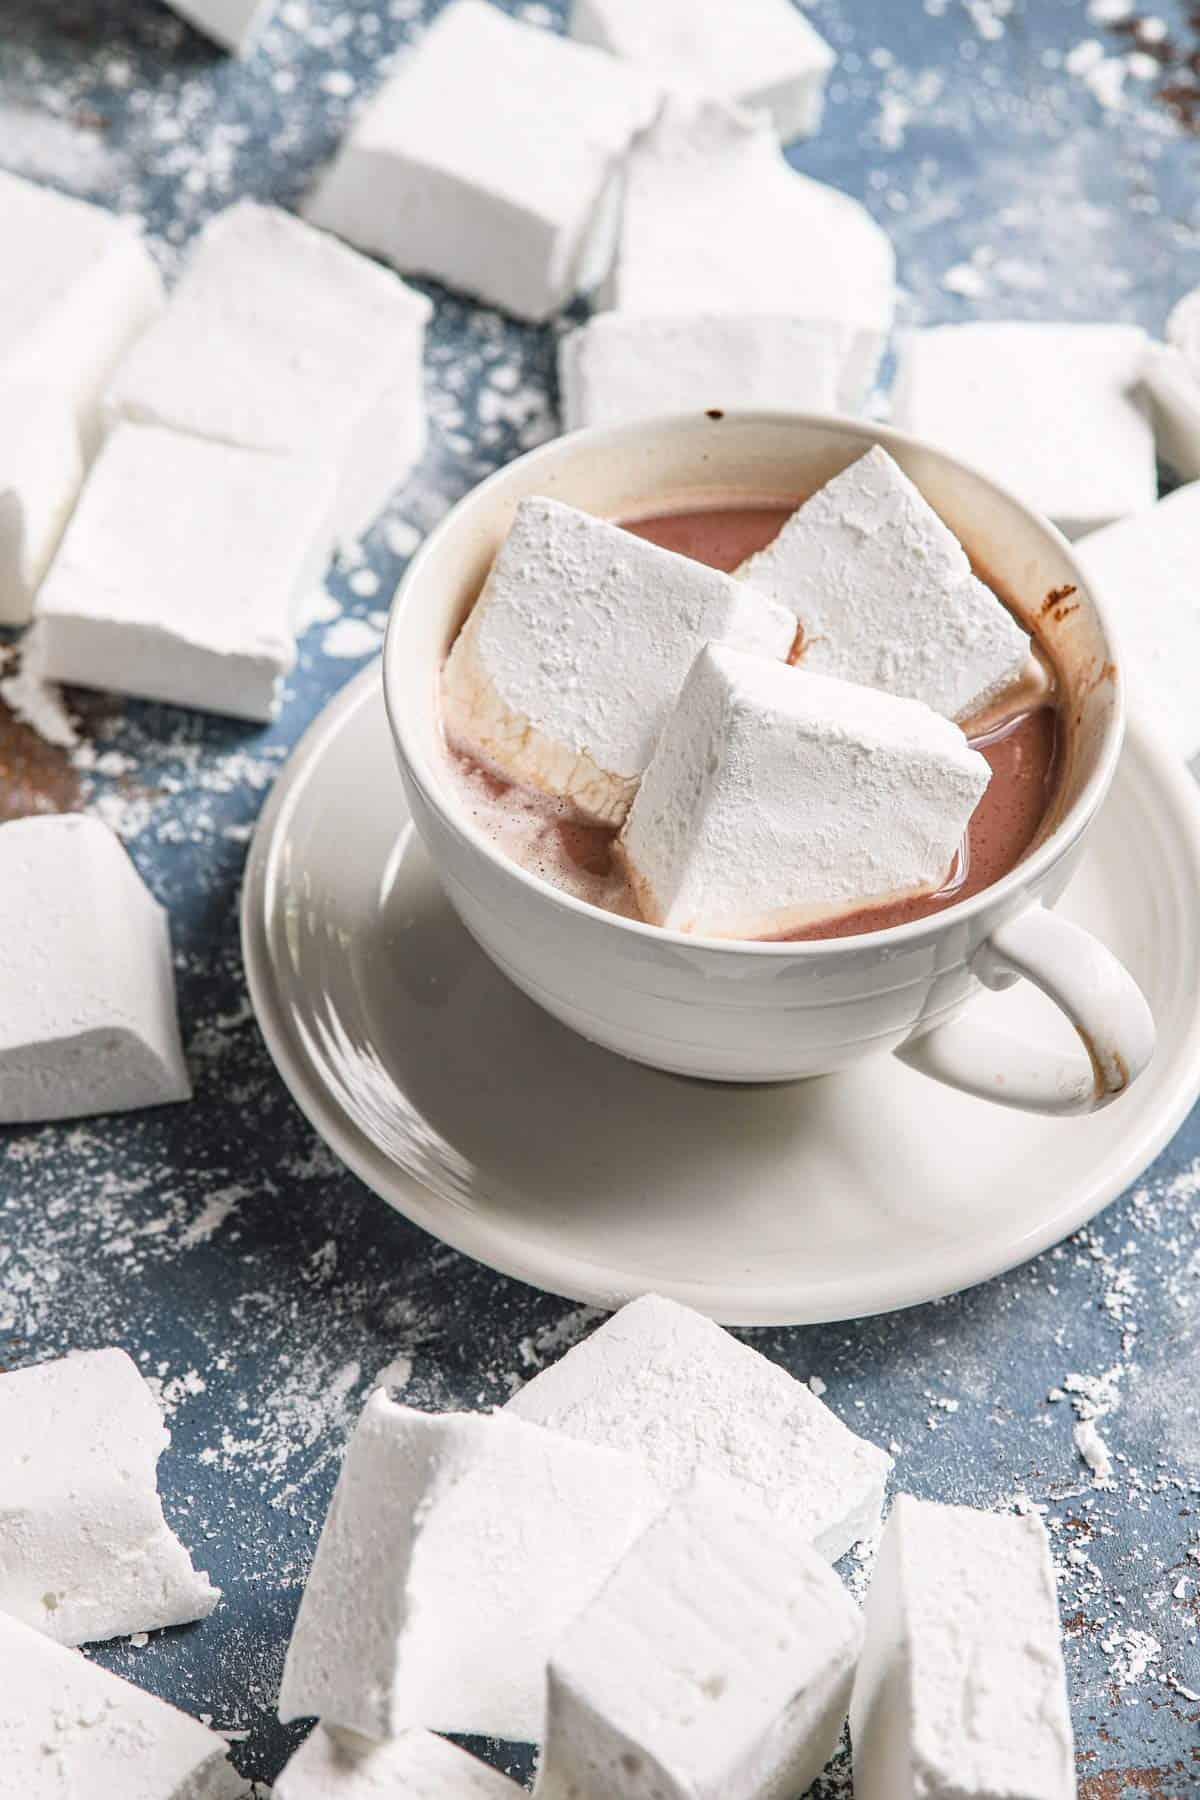 A white up of hot chocolate topped with marshmallows and marshmallows on the blue counter around it.